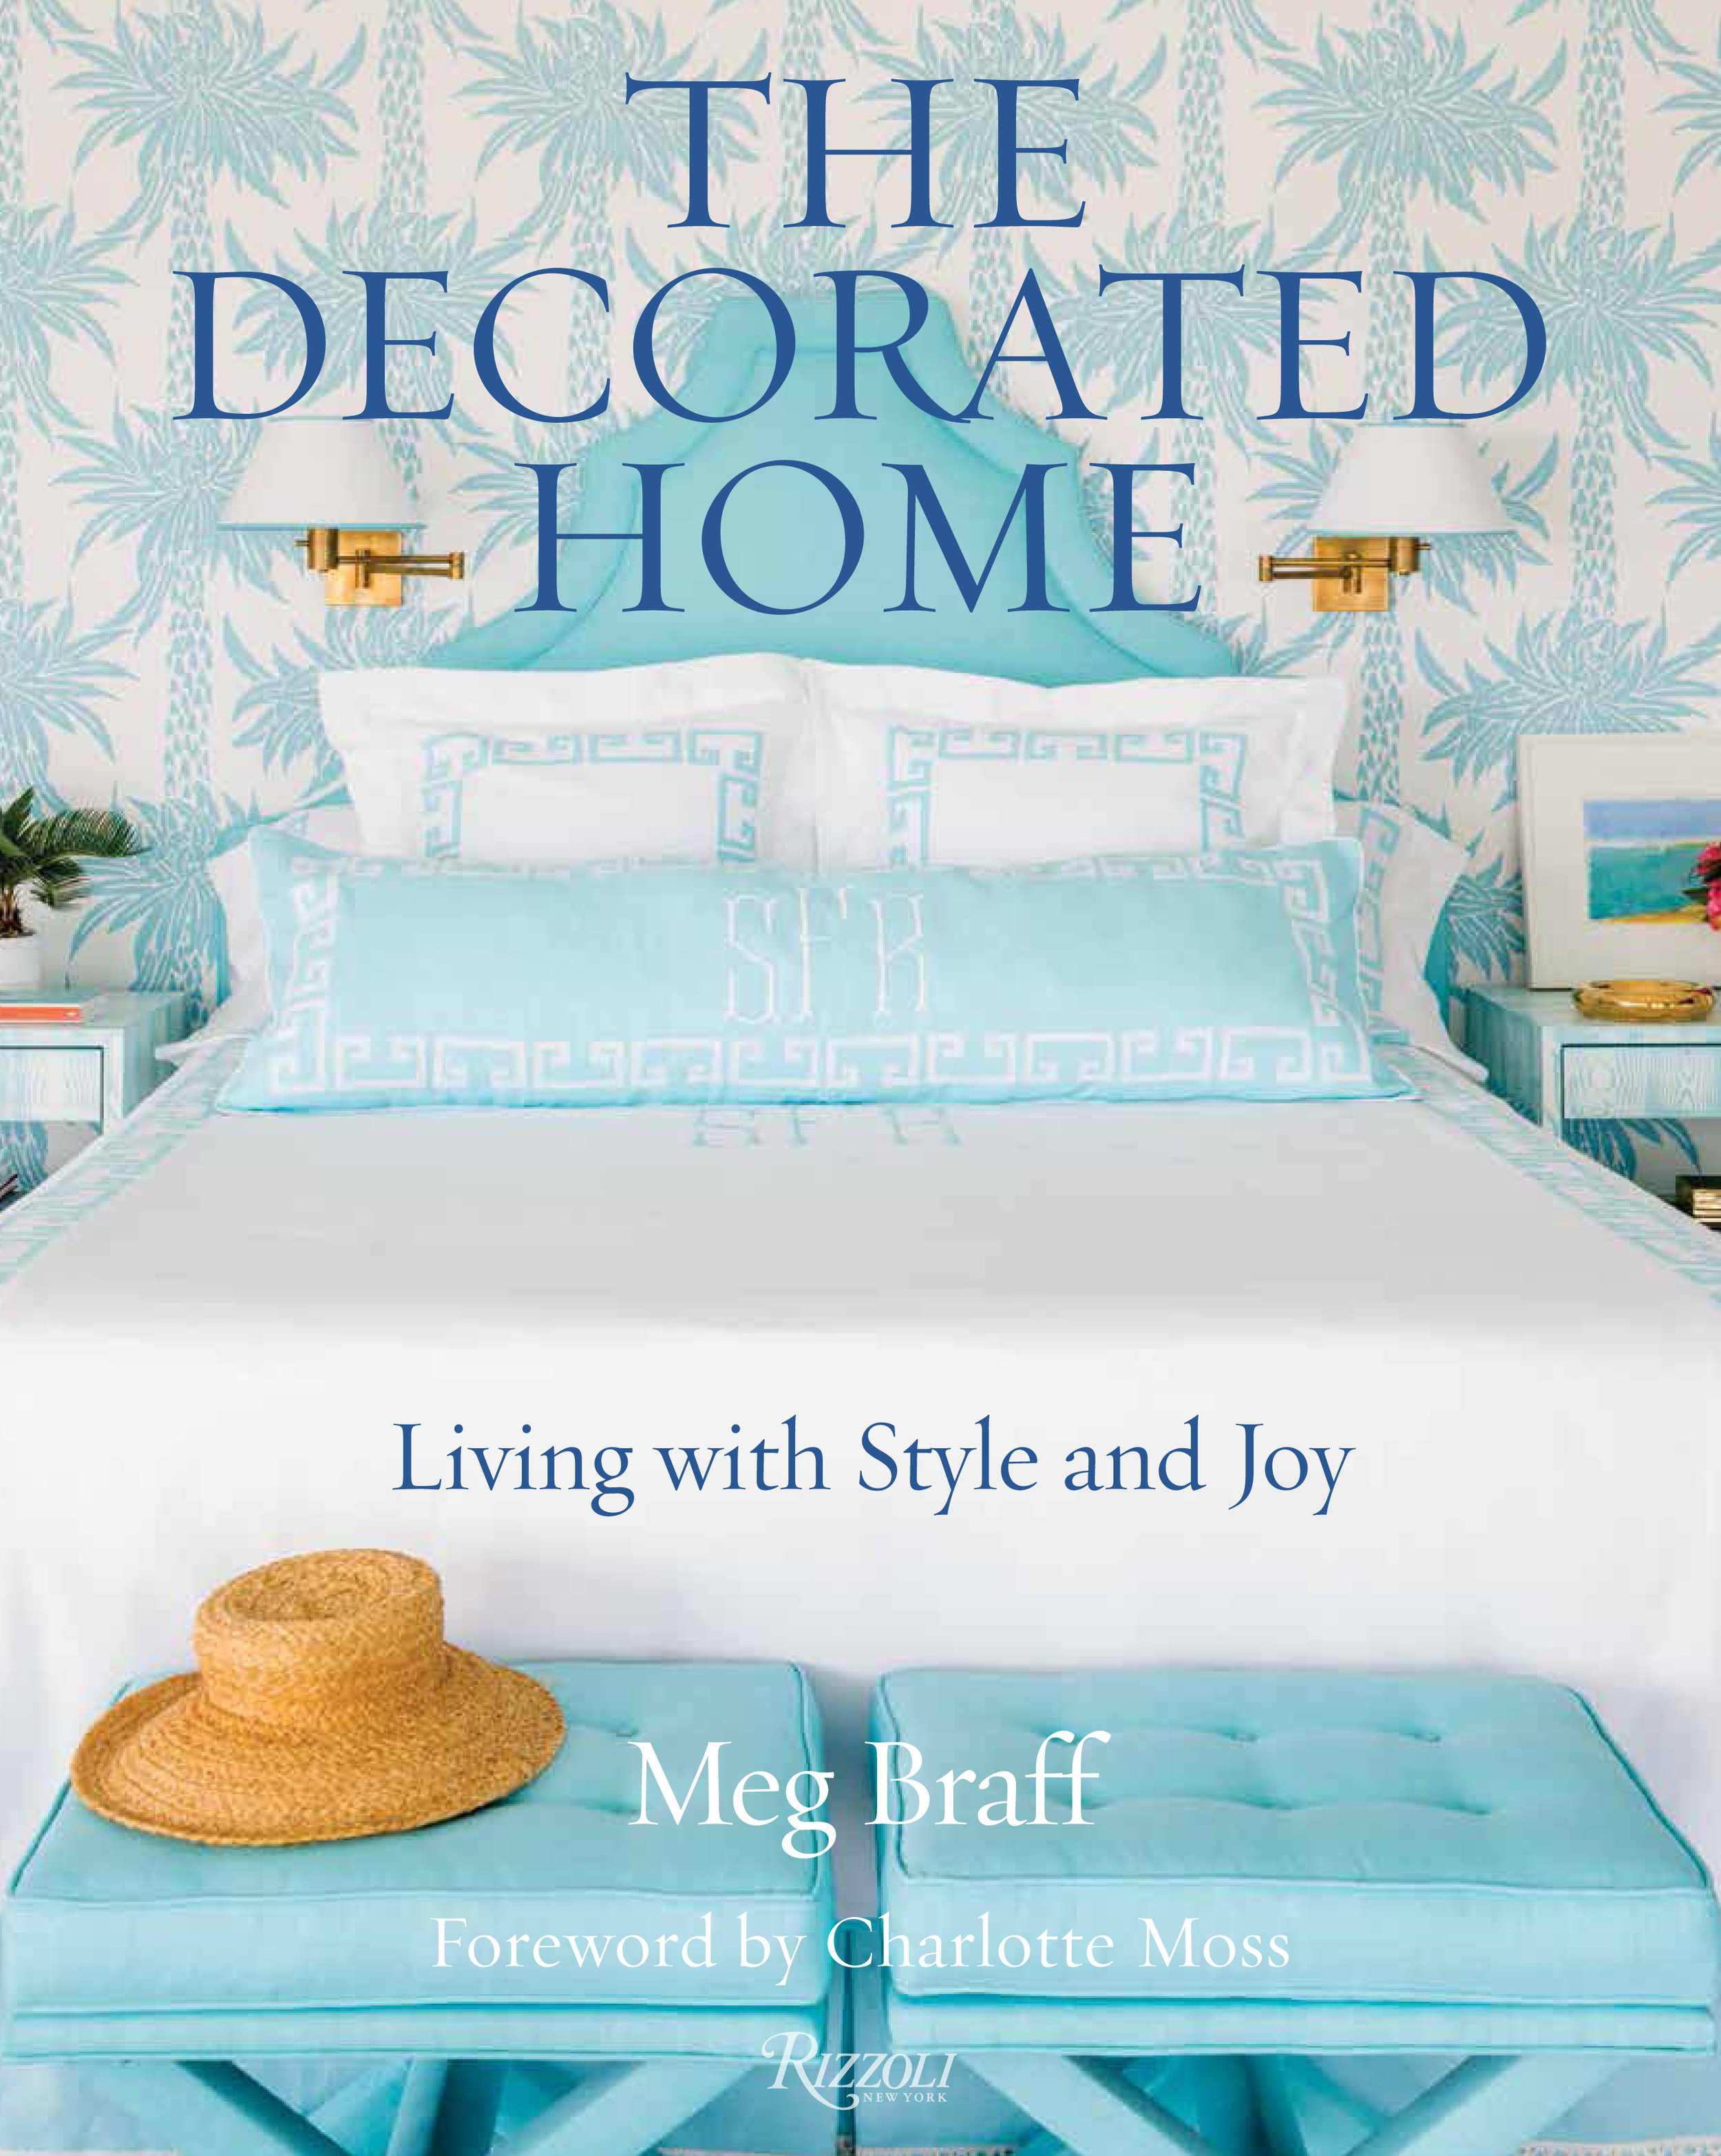 DECORATED_HOME_Jkt.jpg